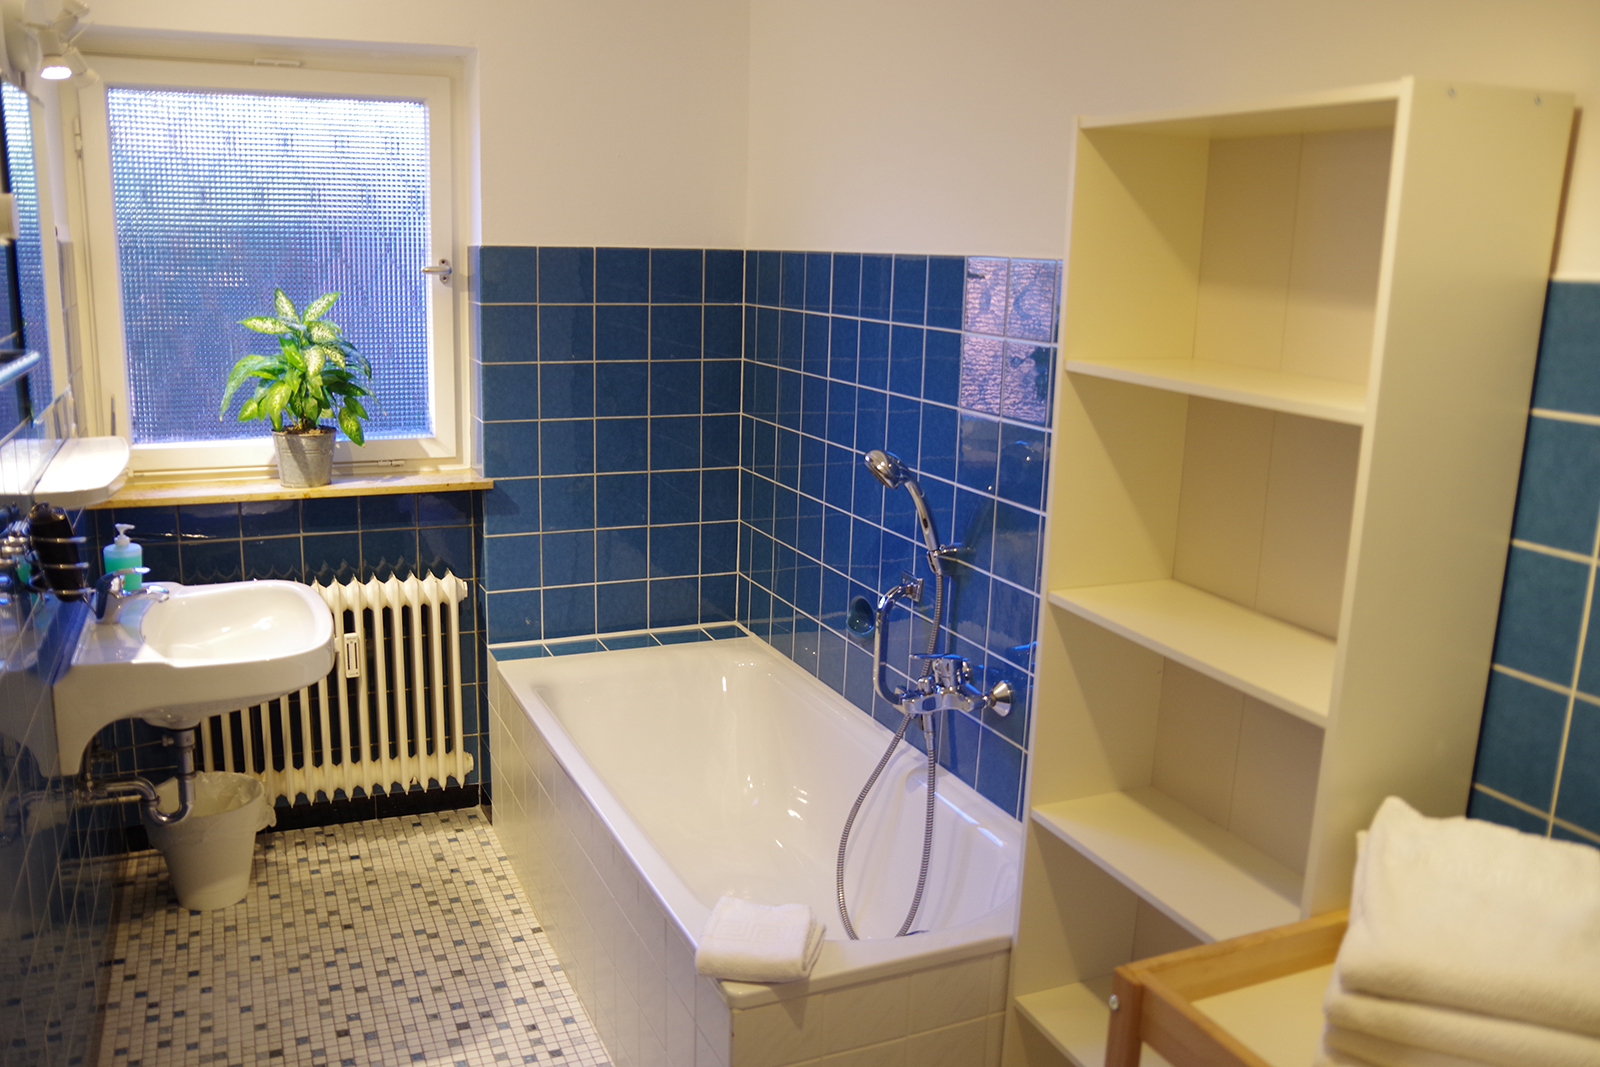 Holiday apartments on Lake Constance: Familienhafen - Bathroom